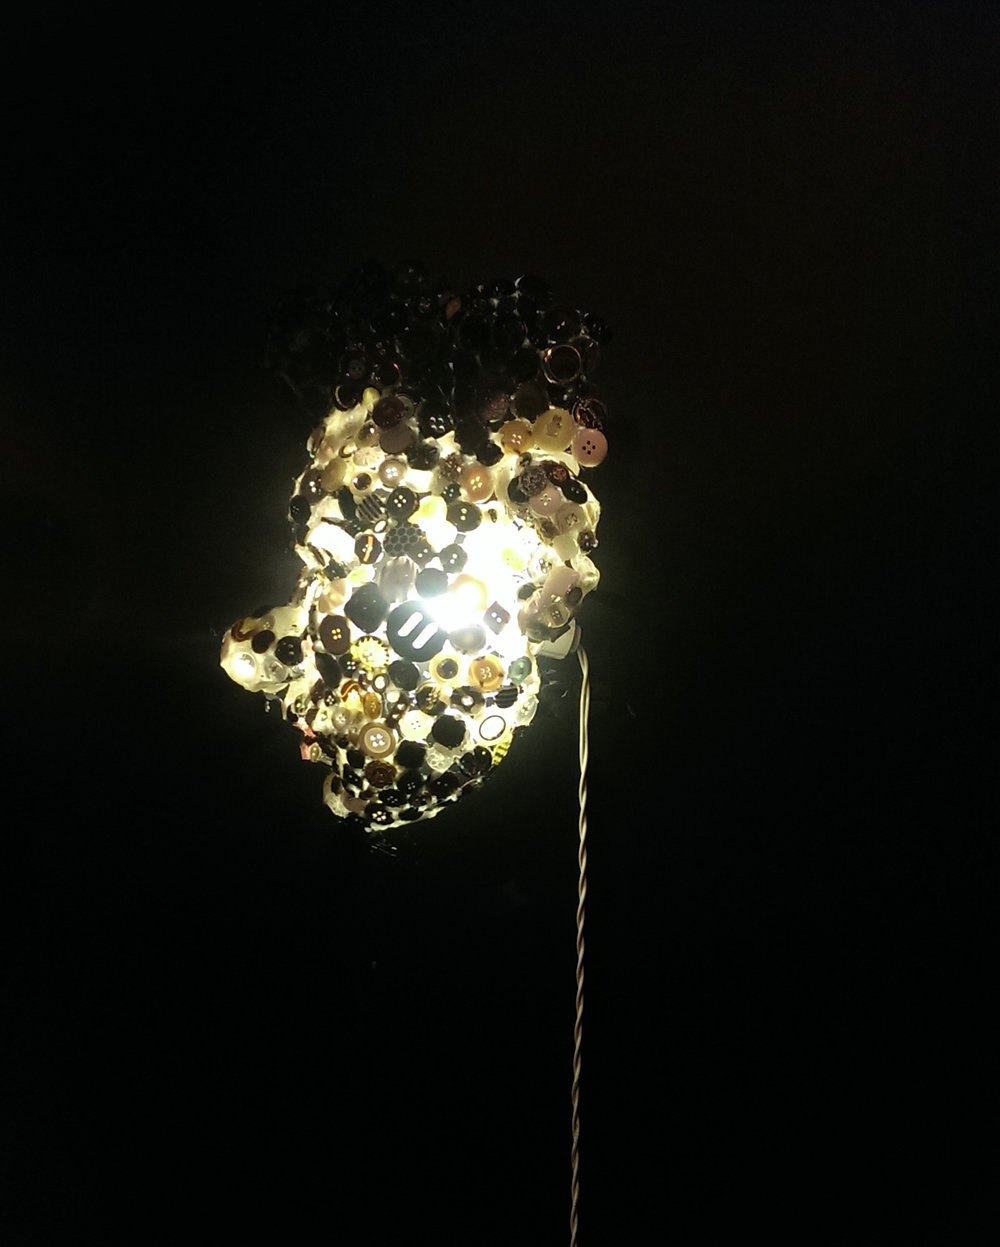 <Self-portrait with buttons and light>  300*400*150mm  May, 2015  Buttons, Light Bulb, Hot Glue